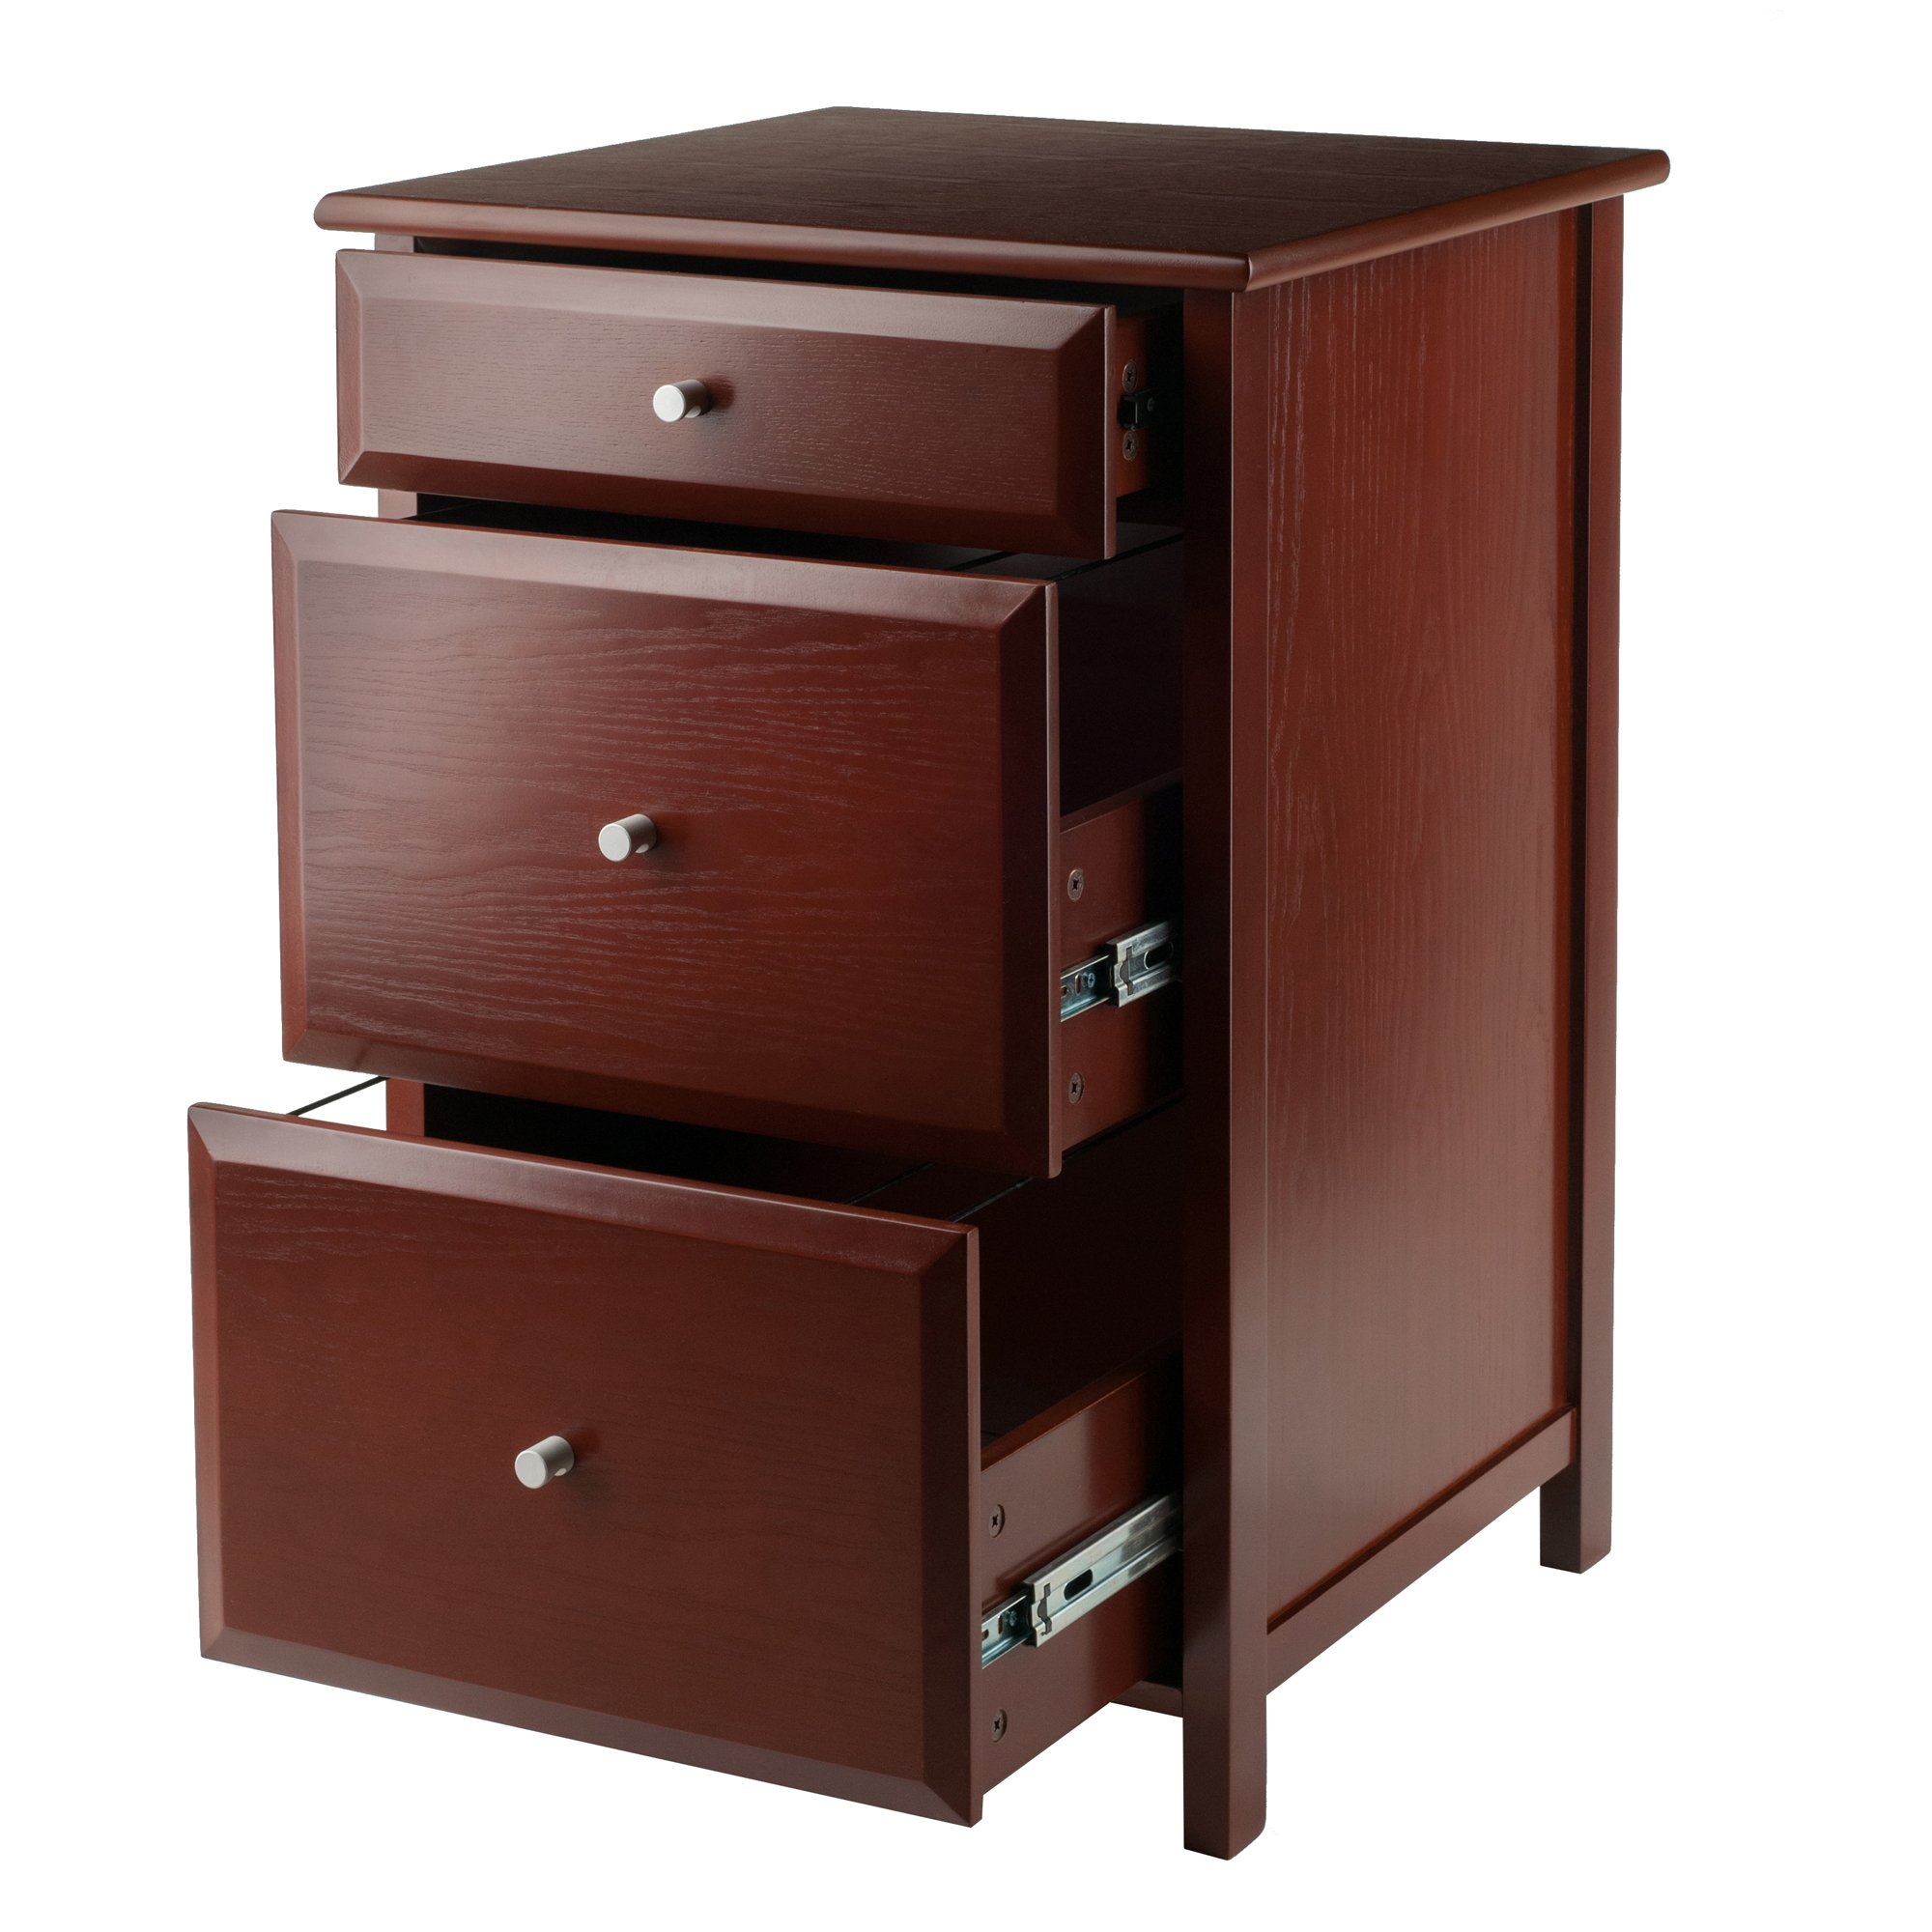 Winsome Wood 94321-WW Delta Home Office, Walnut by Winsome Wood (Image #3)